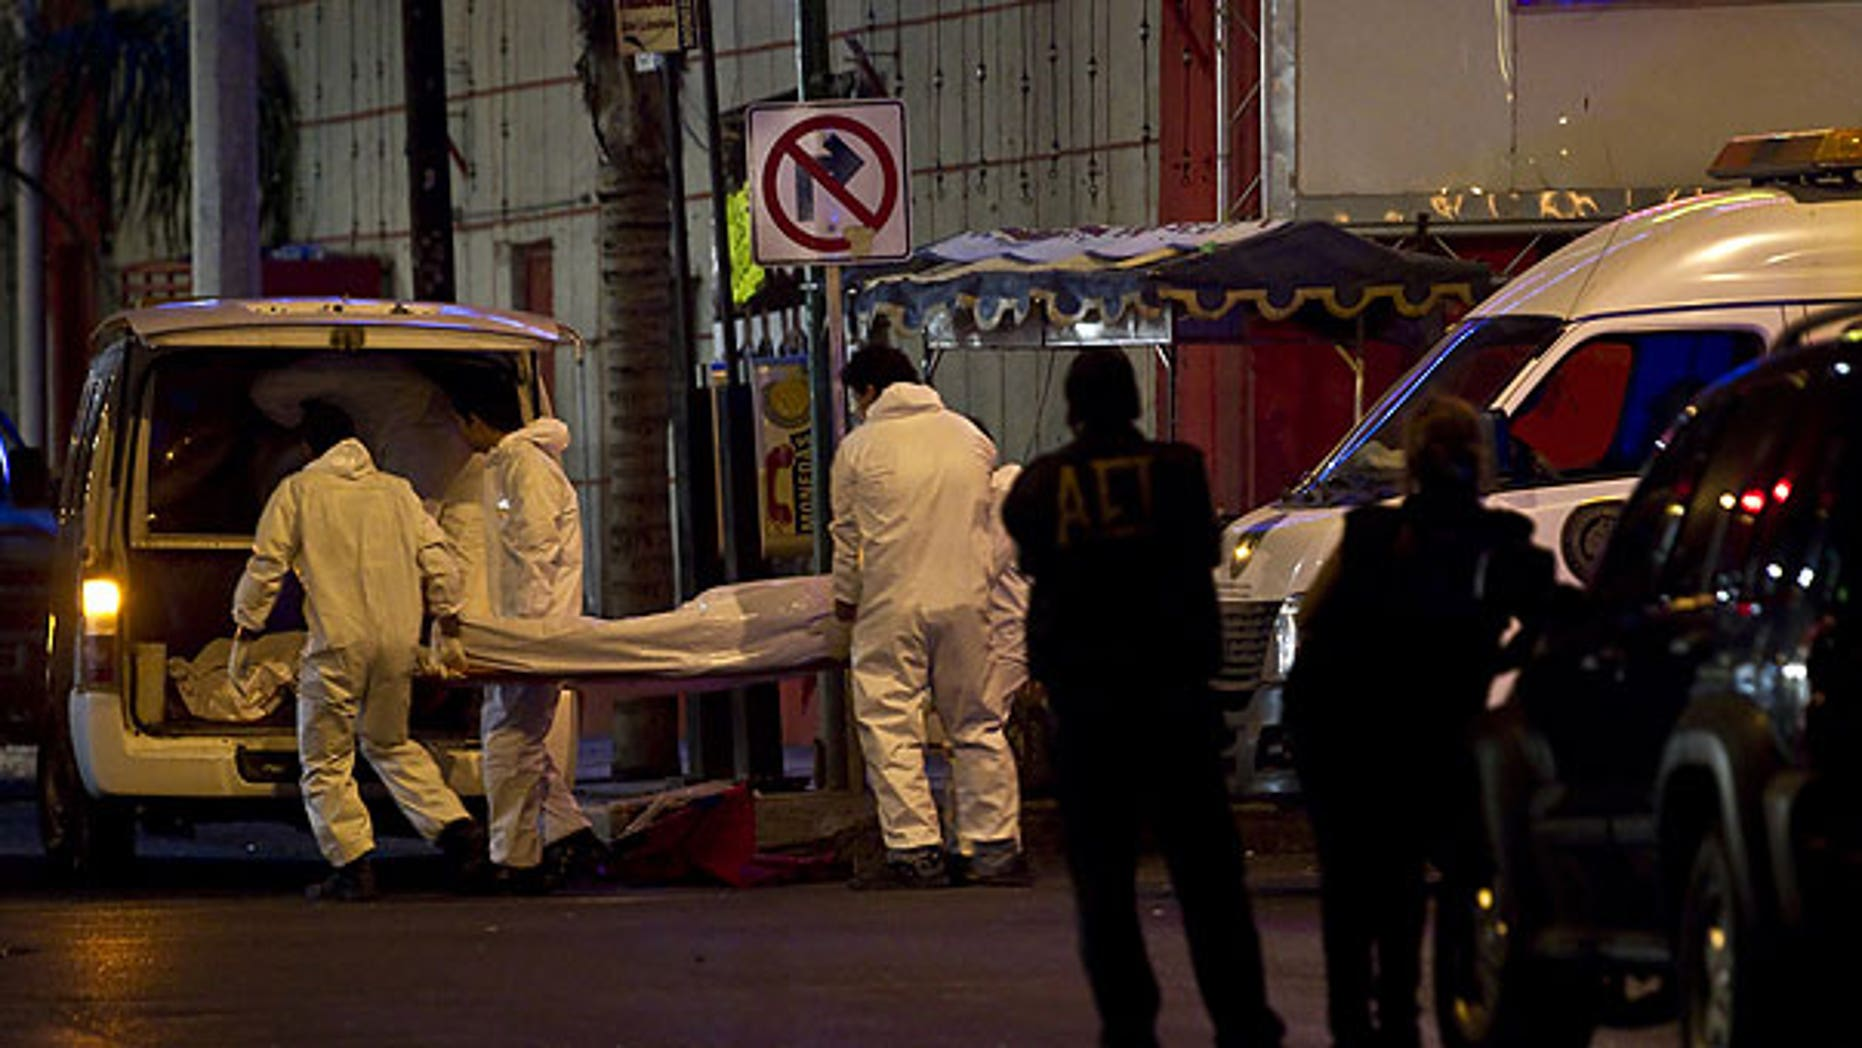 July 8: Forensic workers load a truck with bodies after gunmen stormed into a nightclub in Monterrey, Mexic. At least 17 people were killed in the bar massacre Friday night in the northern Mexican city when riflemen opened fire on the clientele and employees, a state forensic investigator said.